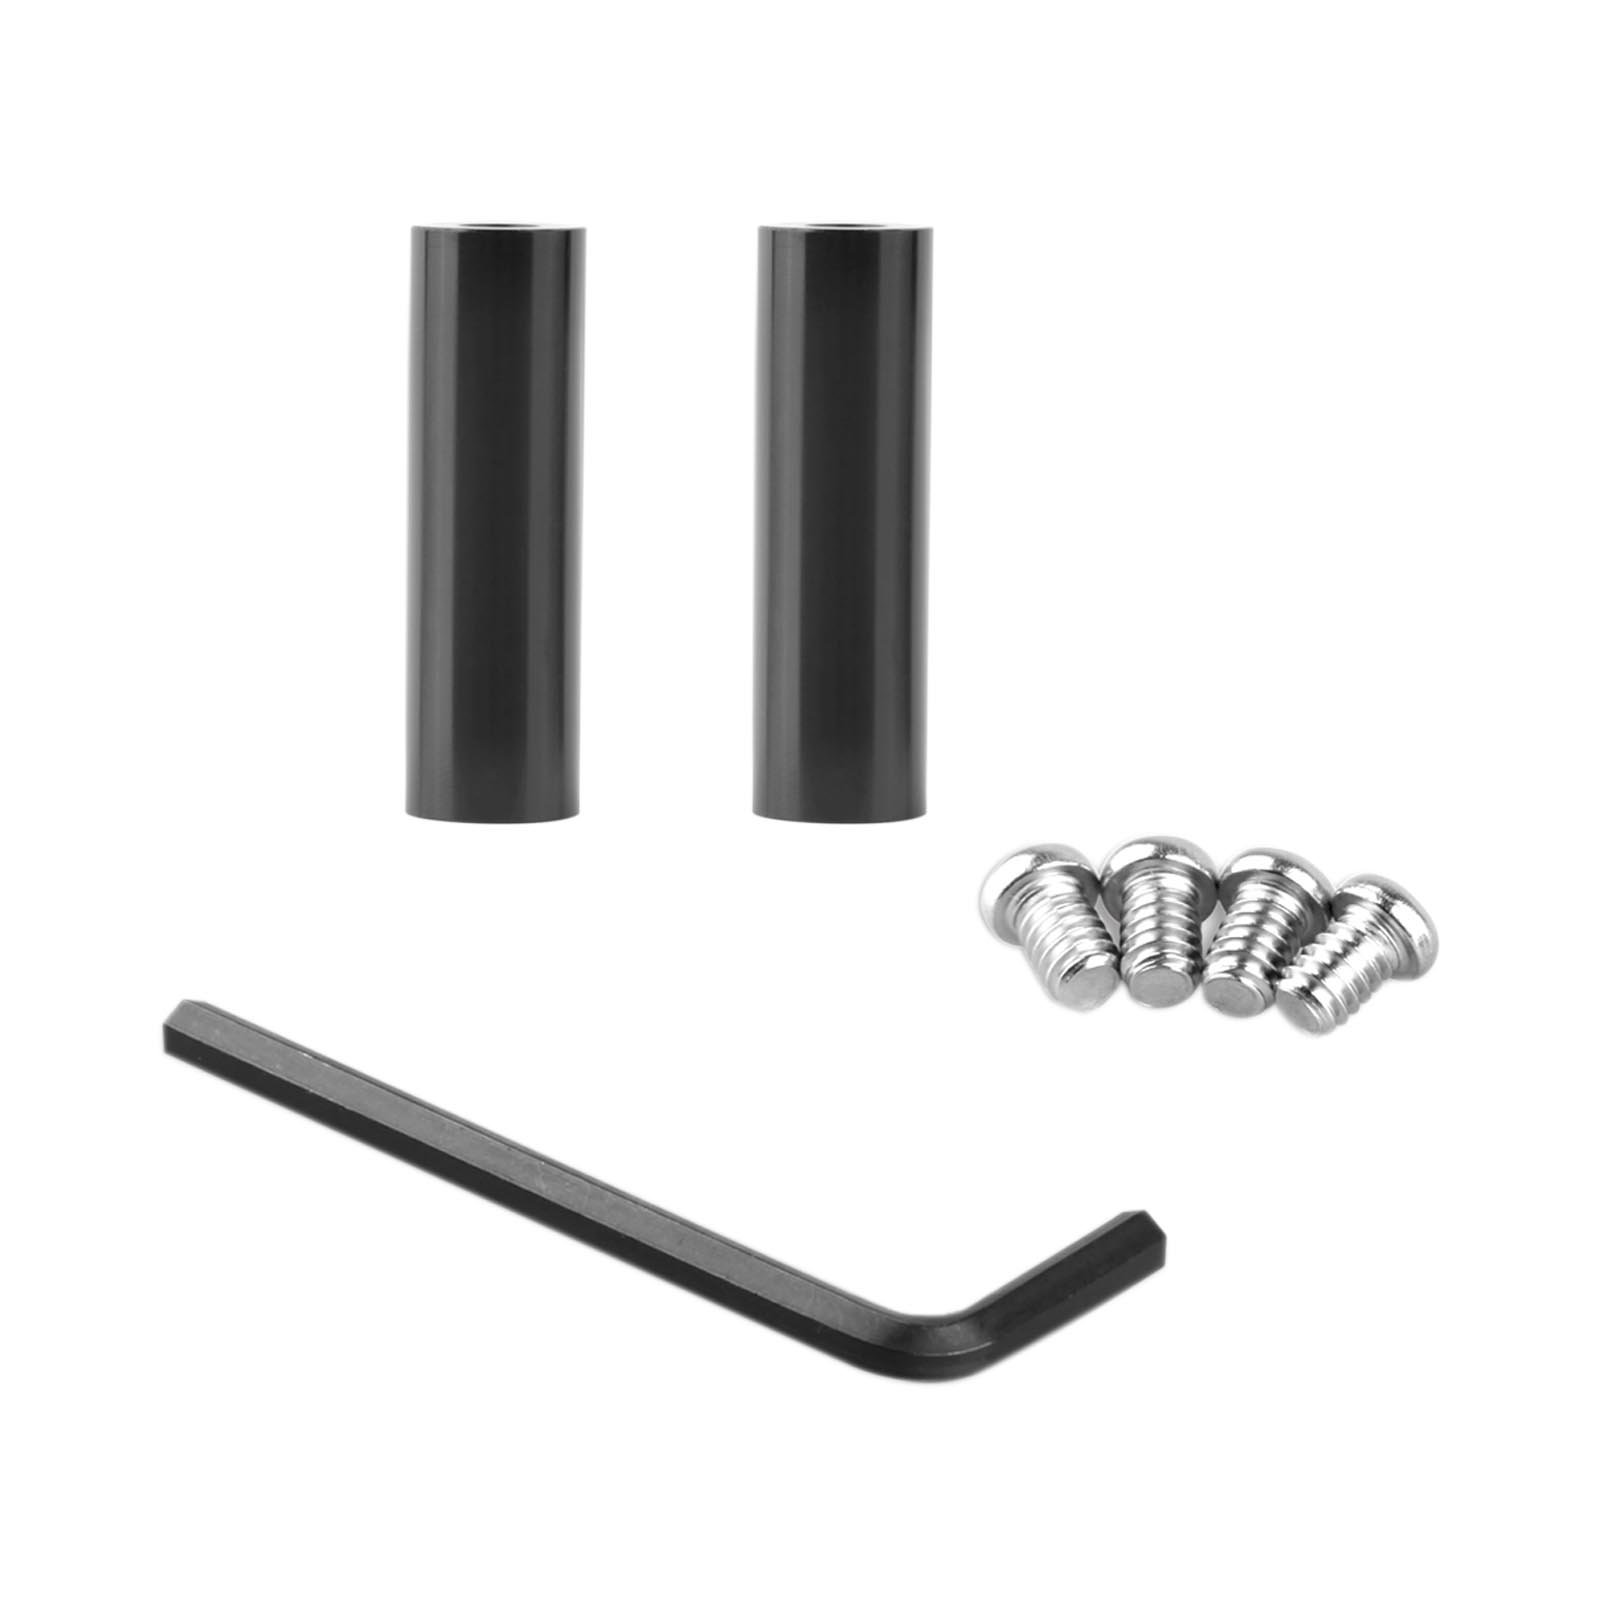 SMALLRIG 1523 15mm Rods 2 Inch 50mm Long with 1/4-20 Thre...